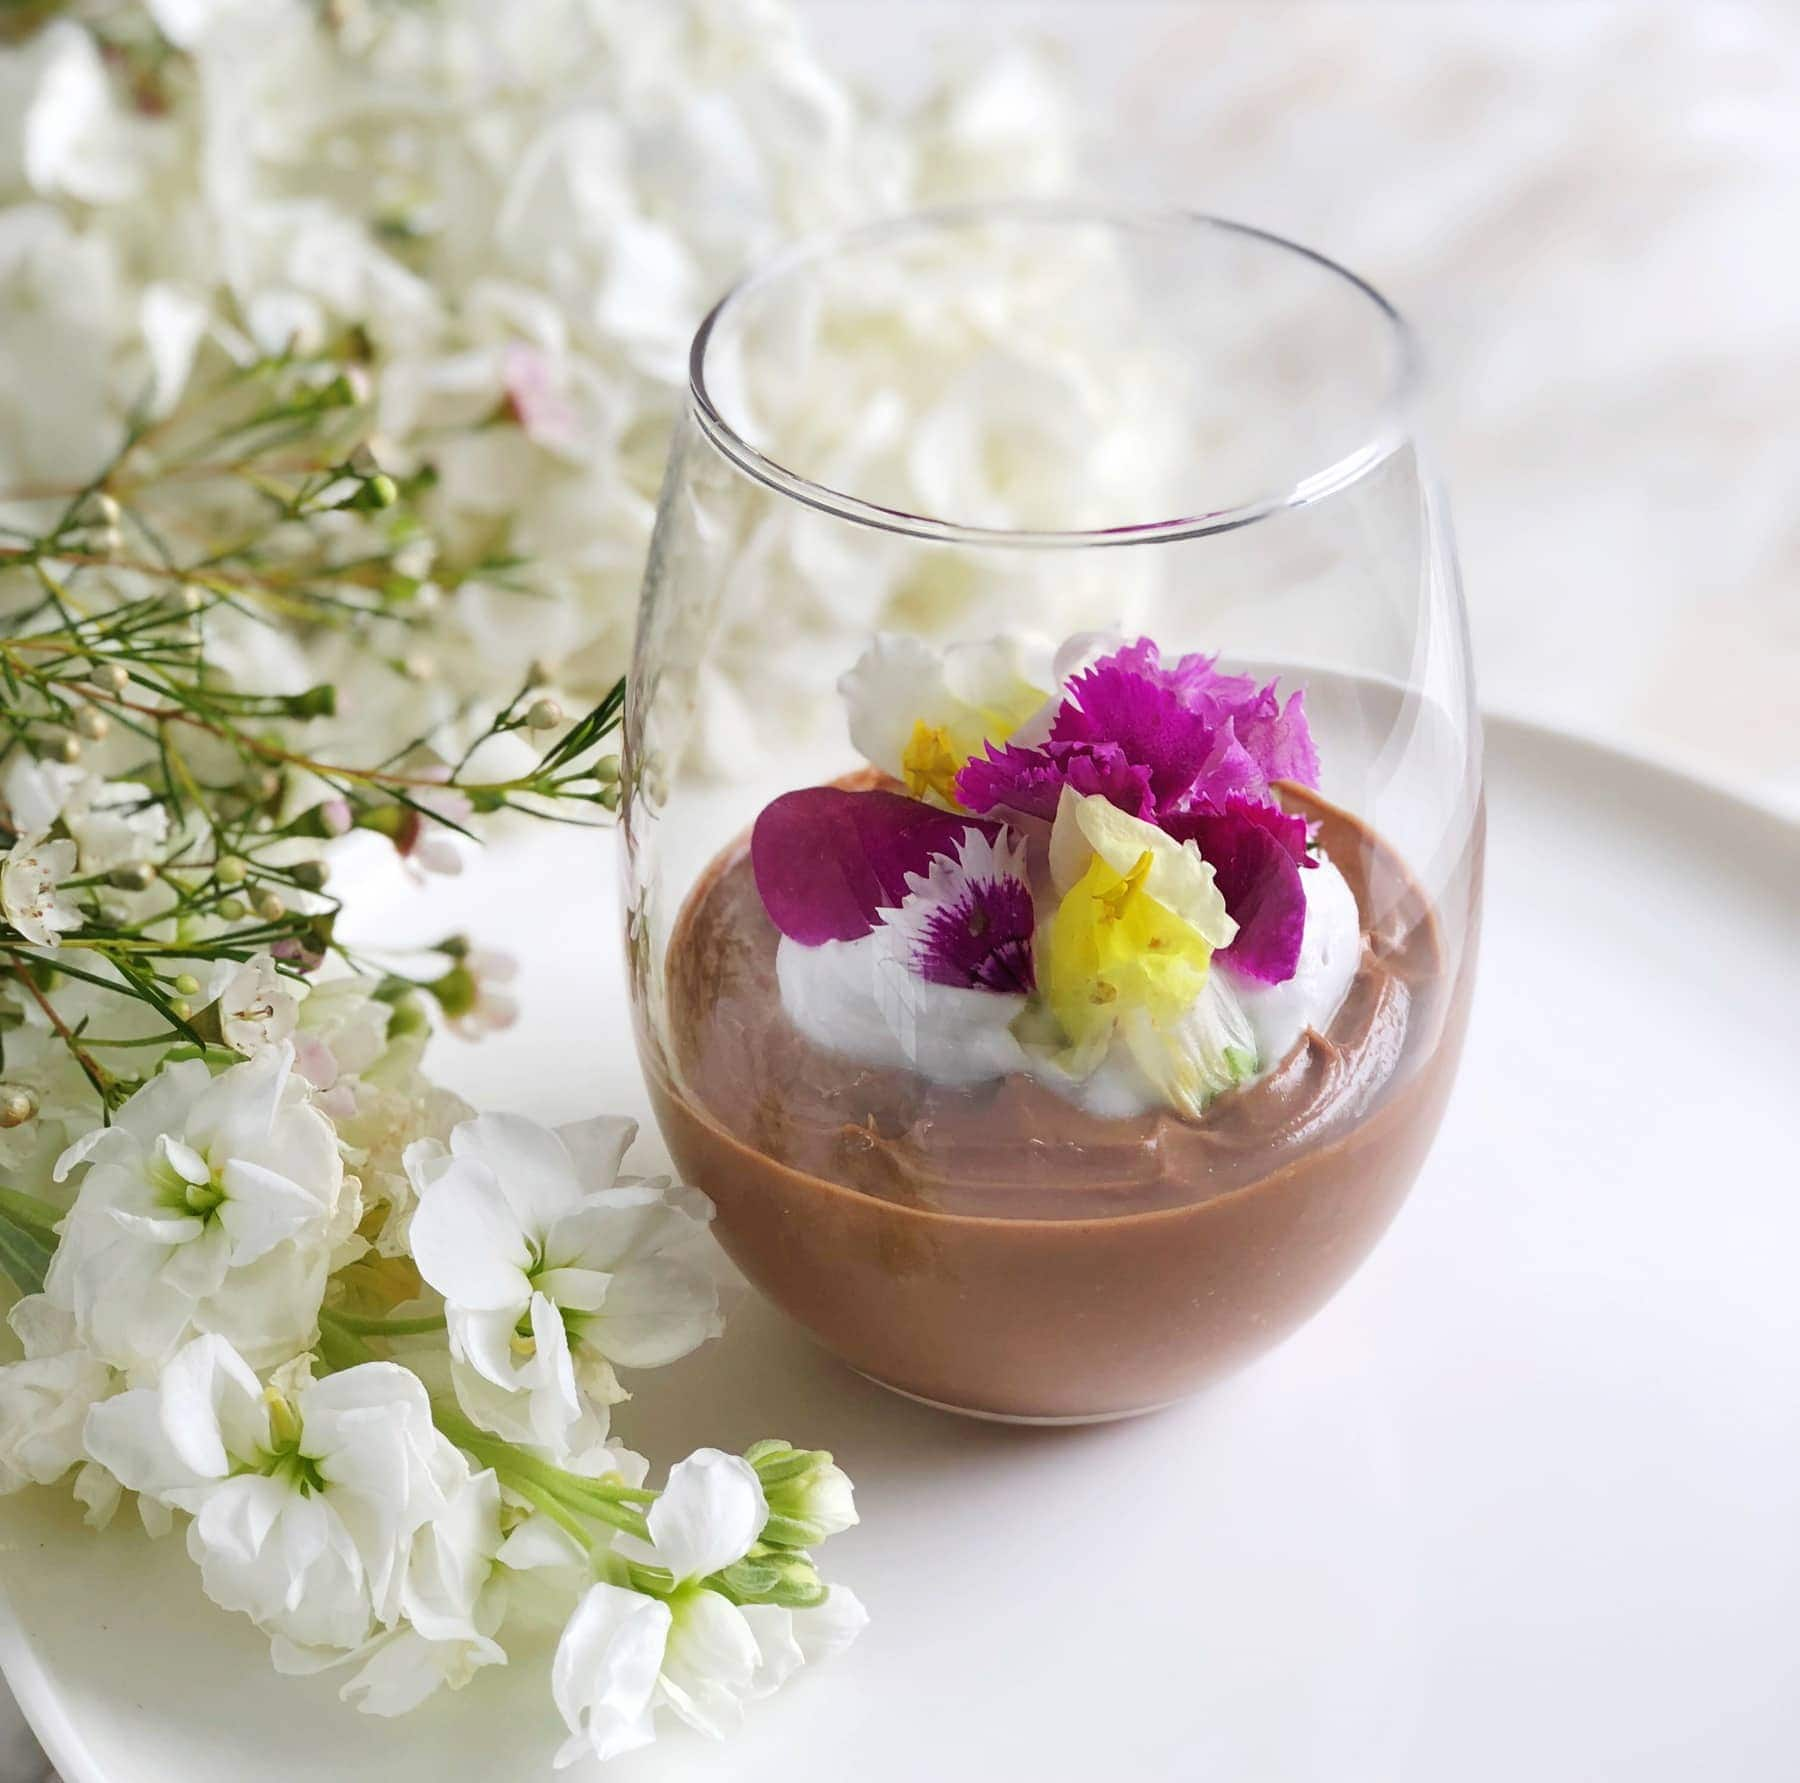 Cacao & Coconut Pudding 1